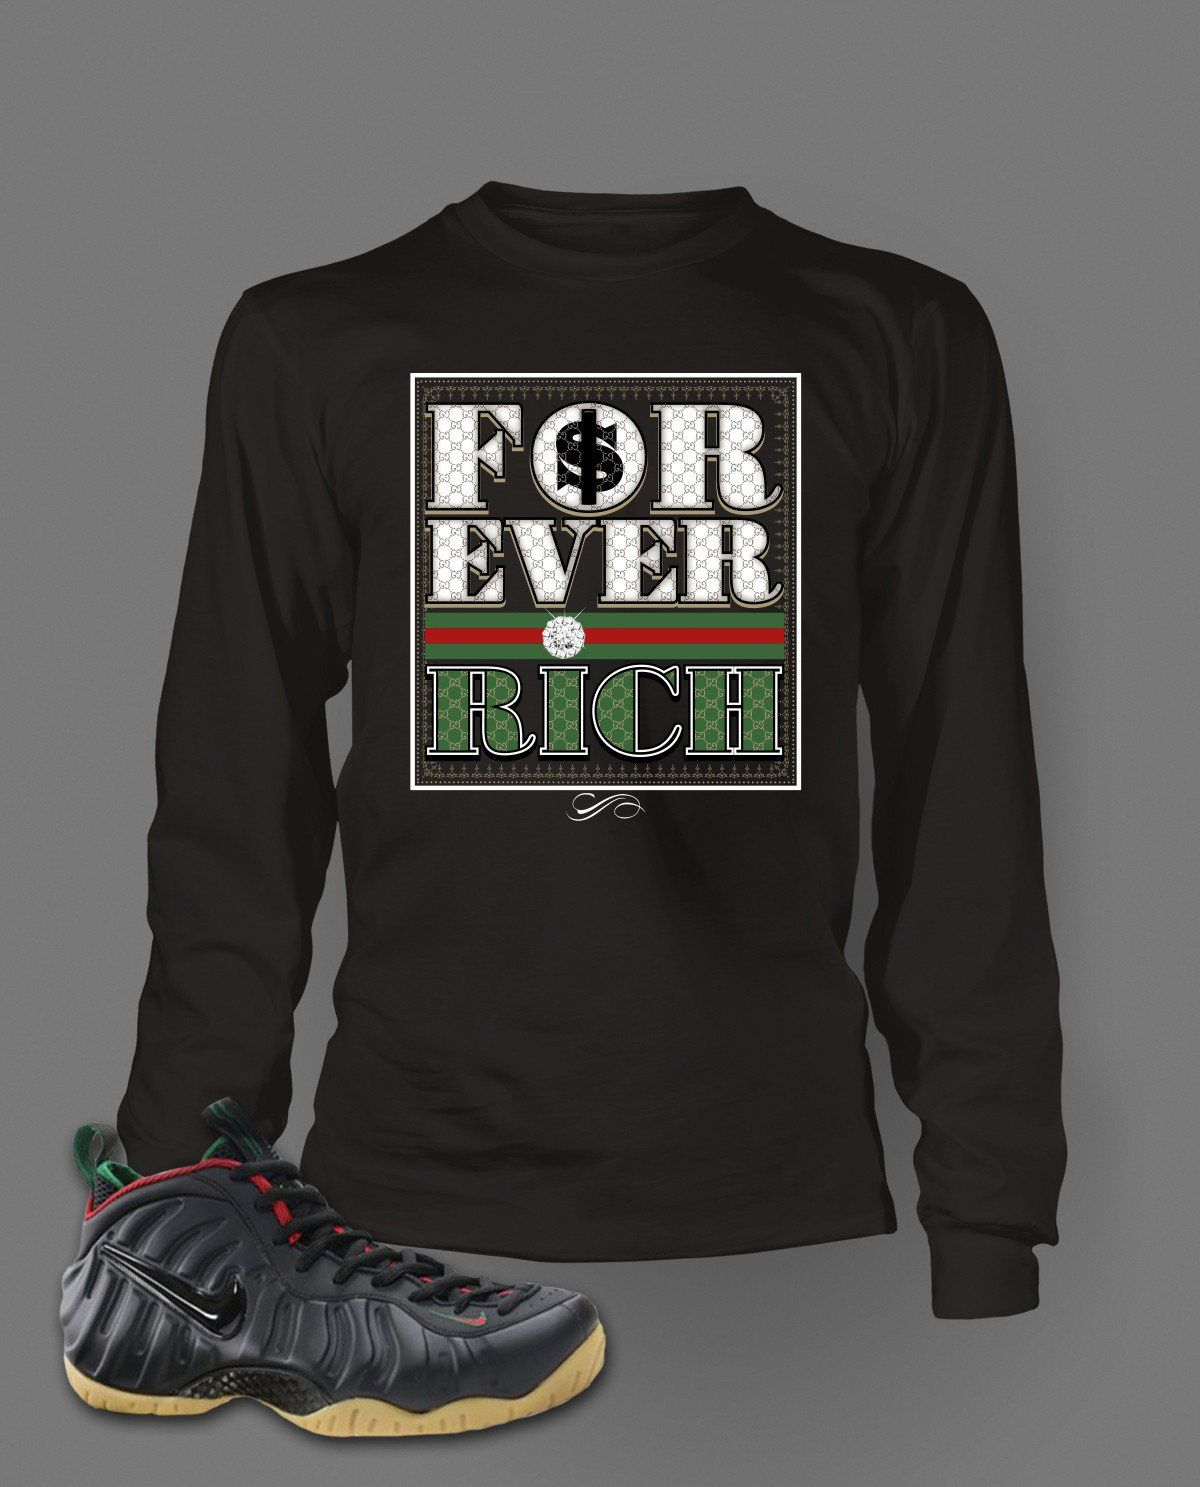 8bb63c71f10 Long Sleeve T Shirt To Match Gucci Black Foamposite Shoe Custom Mens Tee  Design S M L XL XL-Tall 2XL 2XL-Tall 3XL 3XL-Tall LENGTH 28